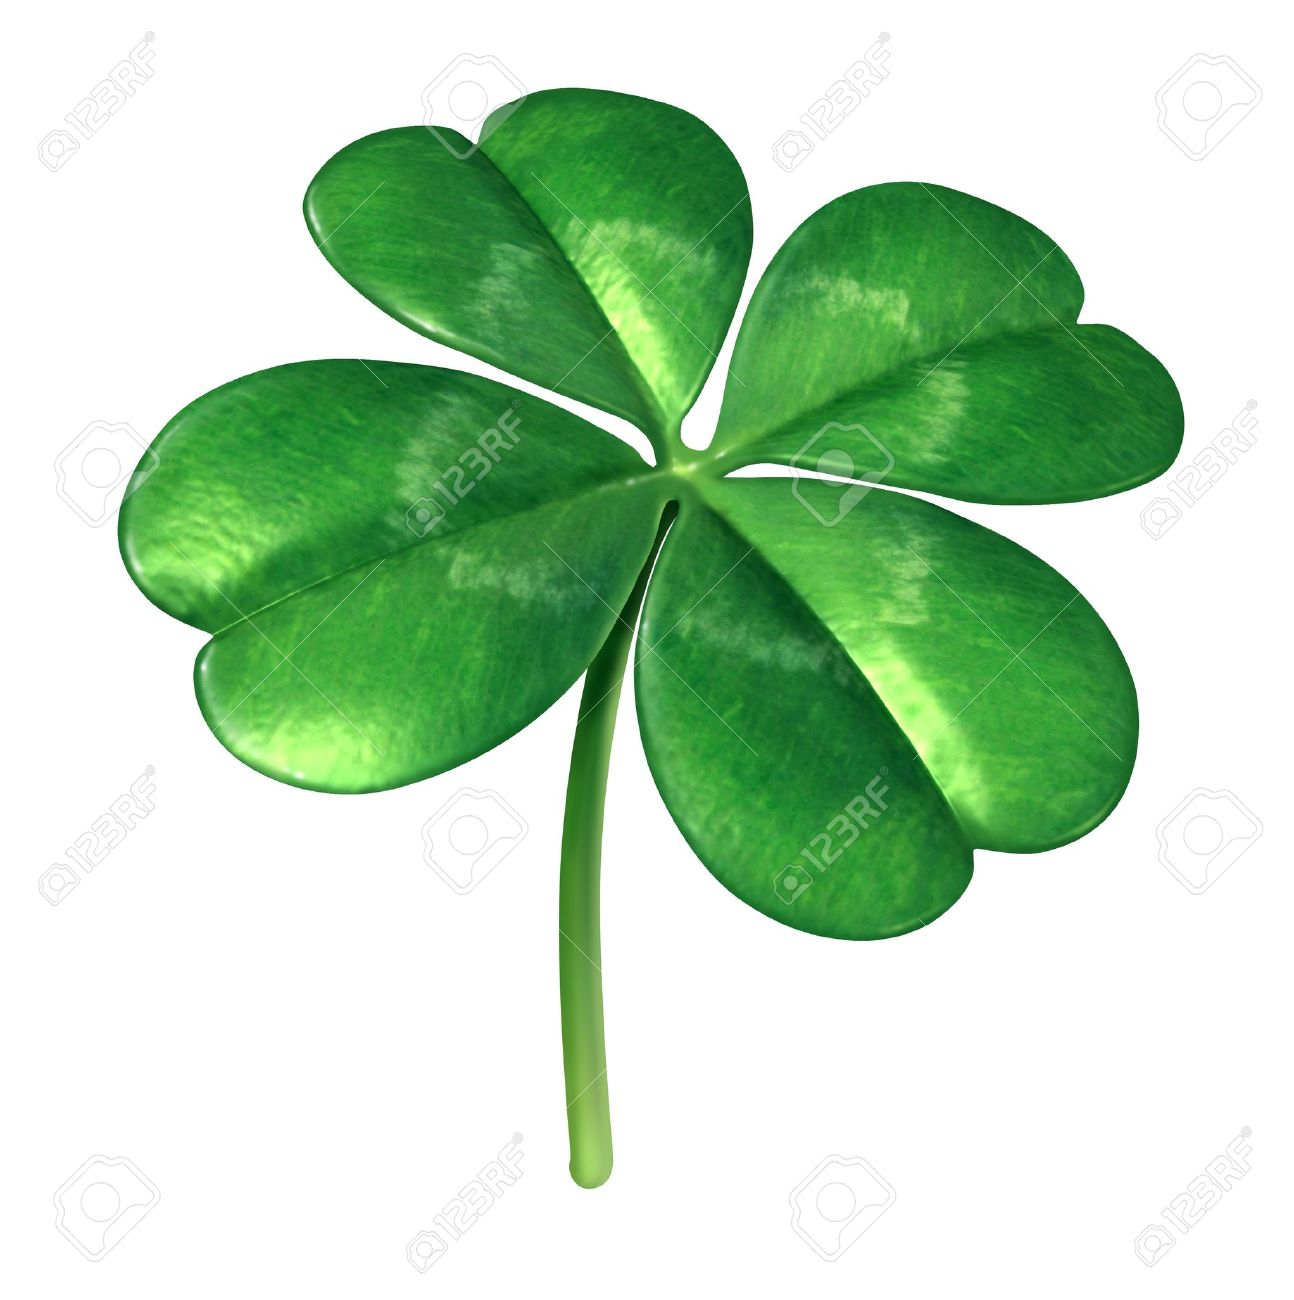 Four leaf clover plant as an irish symbol for a green lucky charm four leaf clover plant as an irish symbol for a green lucky charm icon of good biocorpaavc Image collections